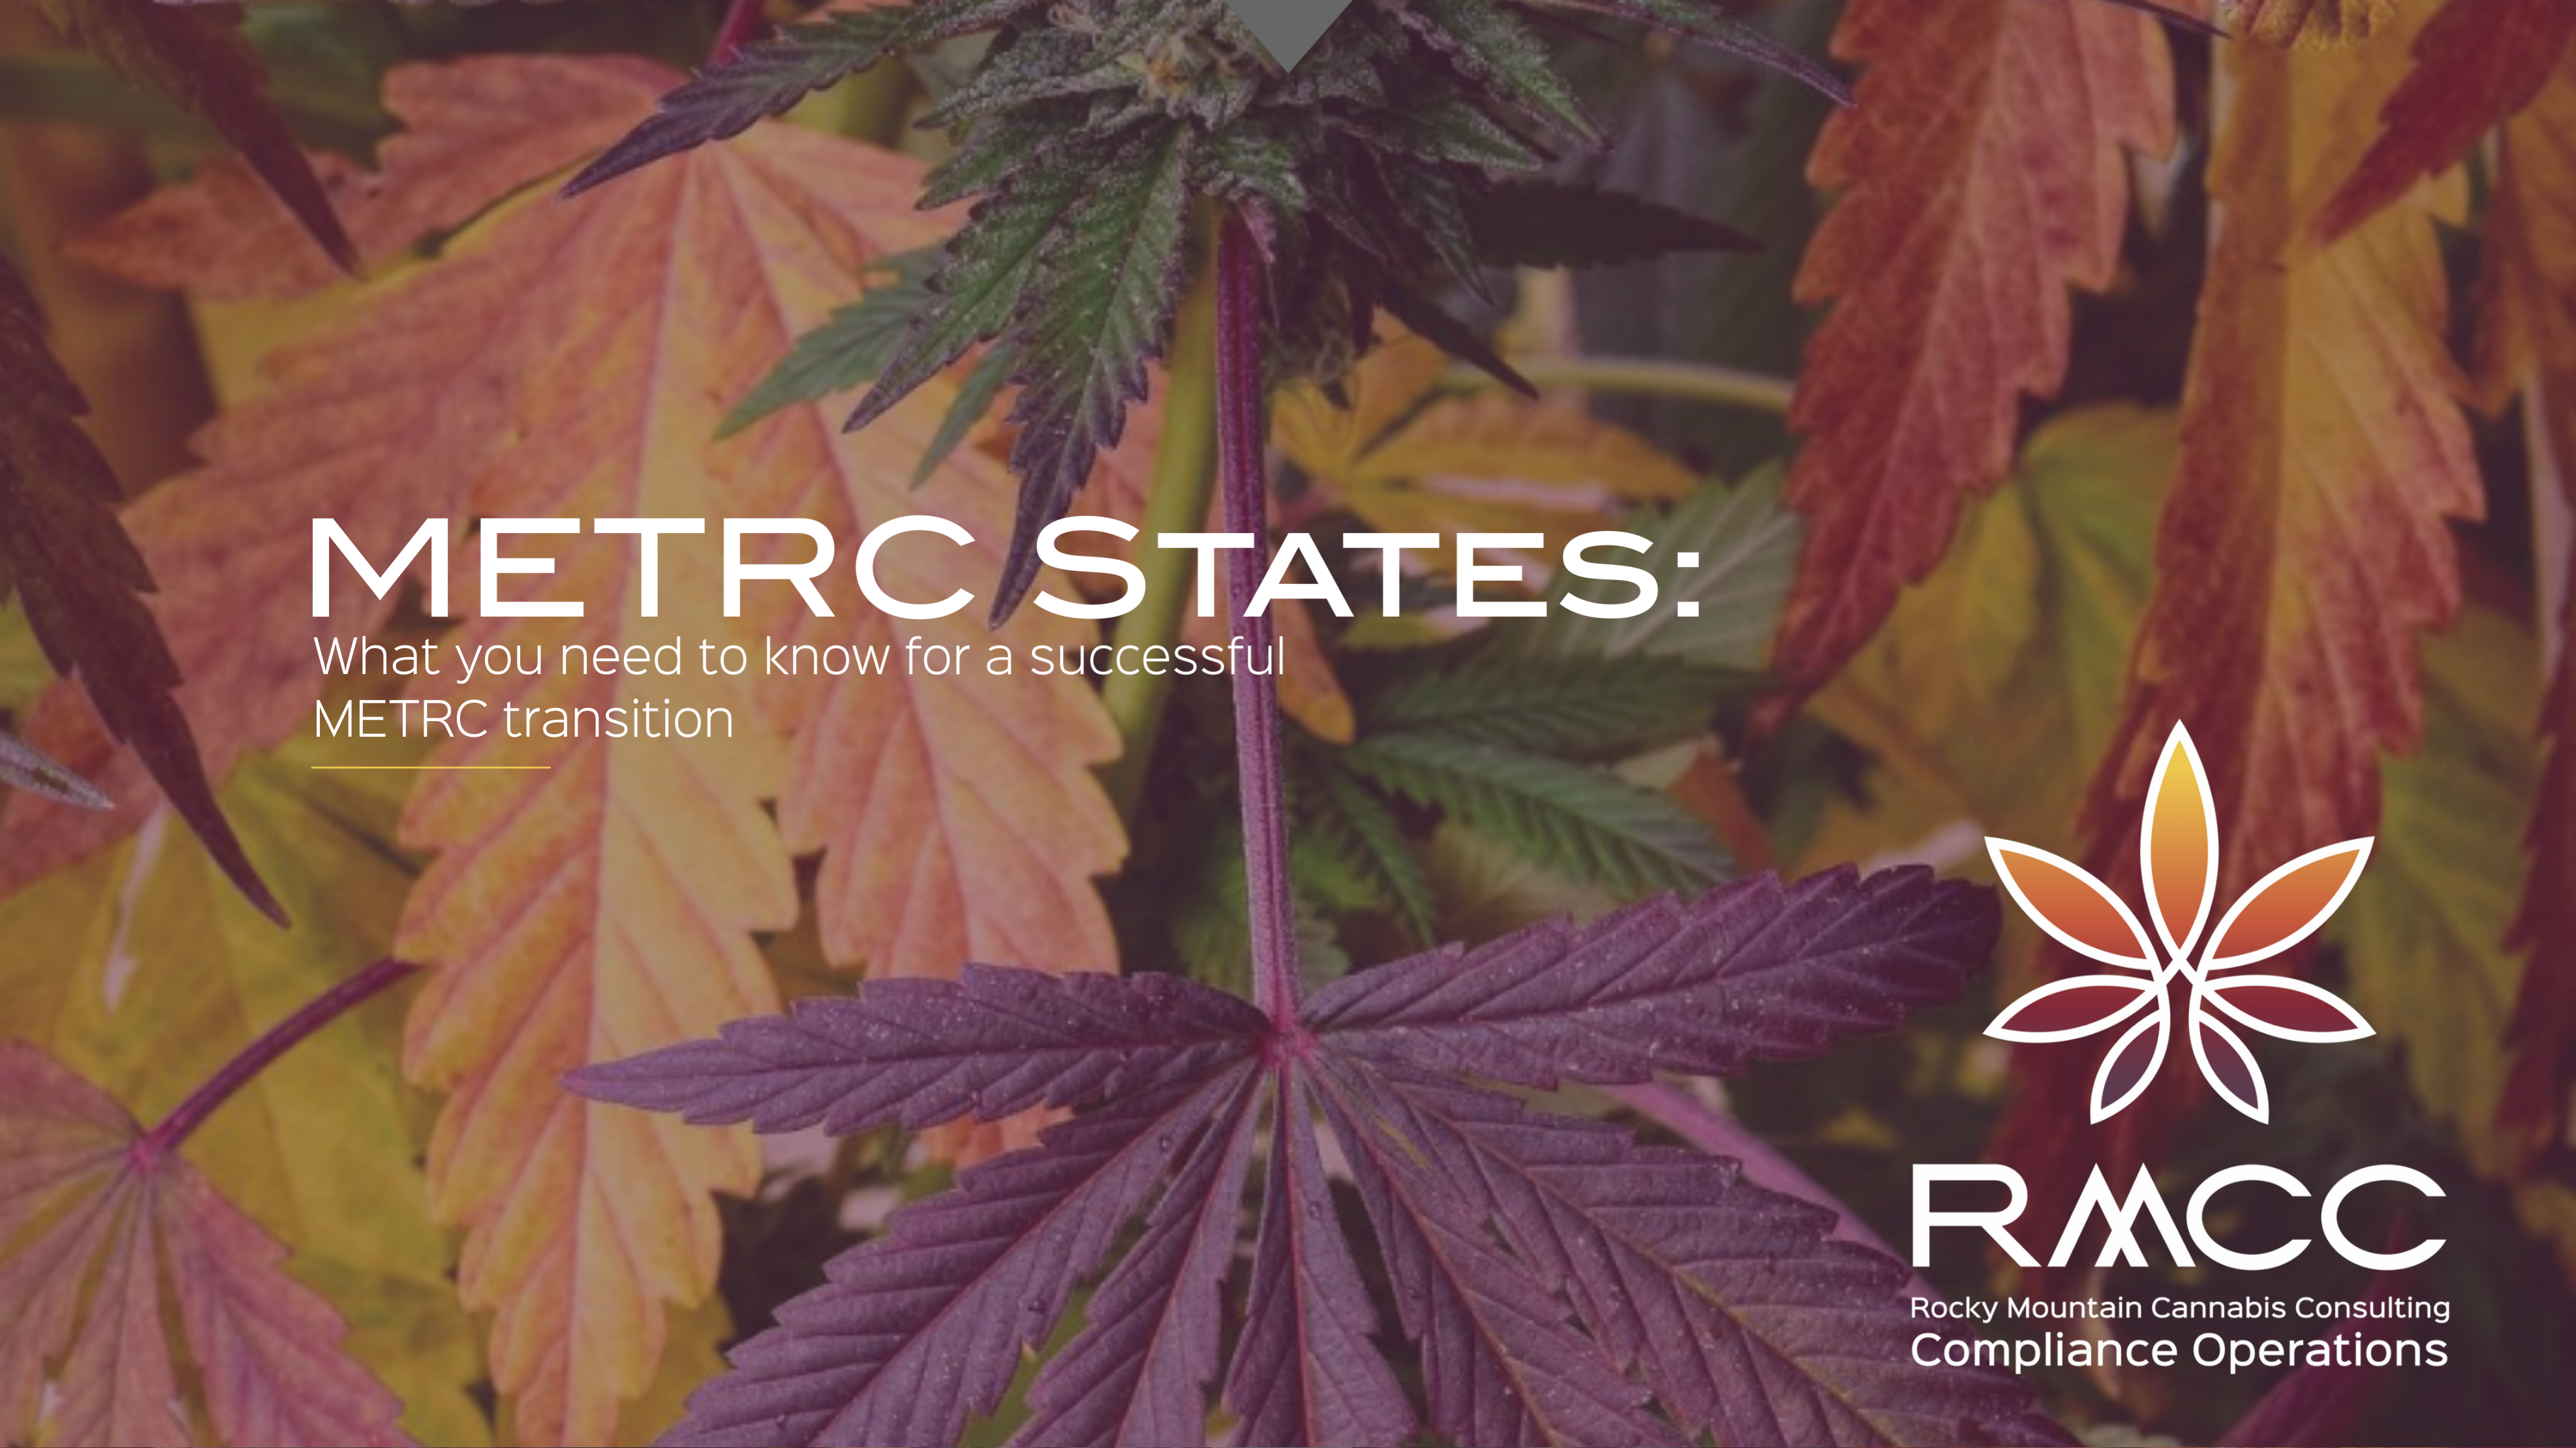 METRC STATES WHAT YOU NEED TO KNOW FOR A SUCCESSFUL METRC